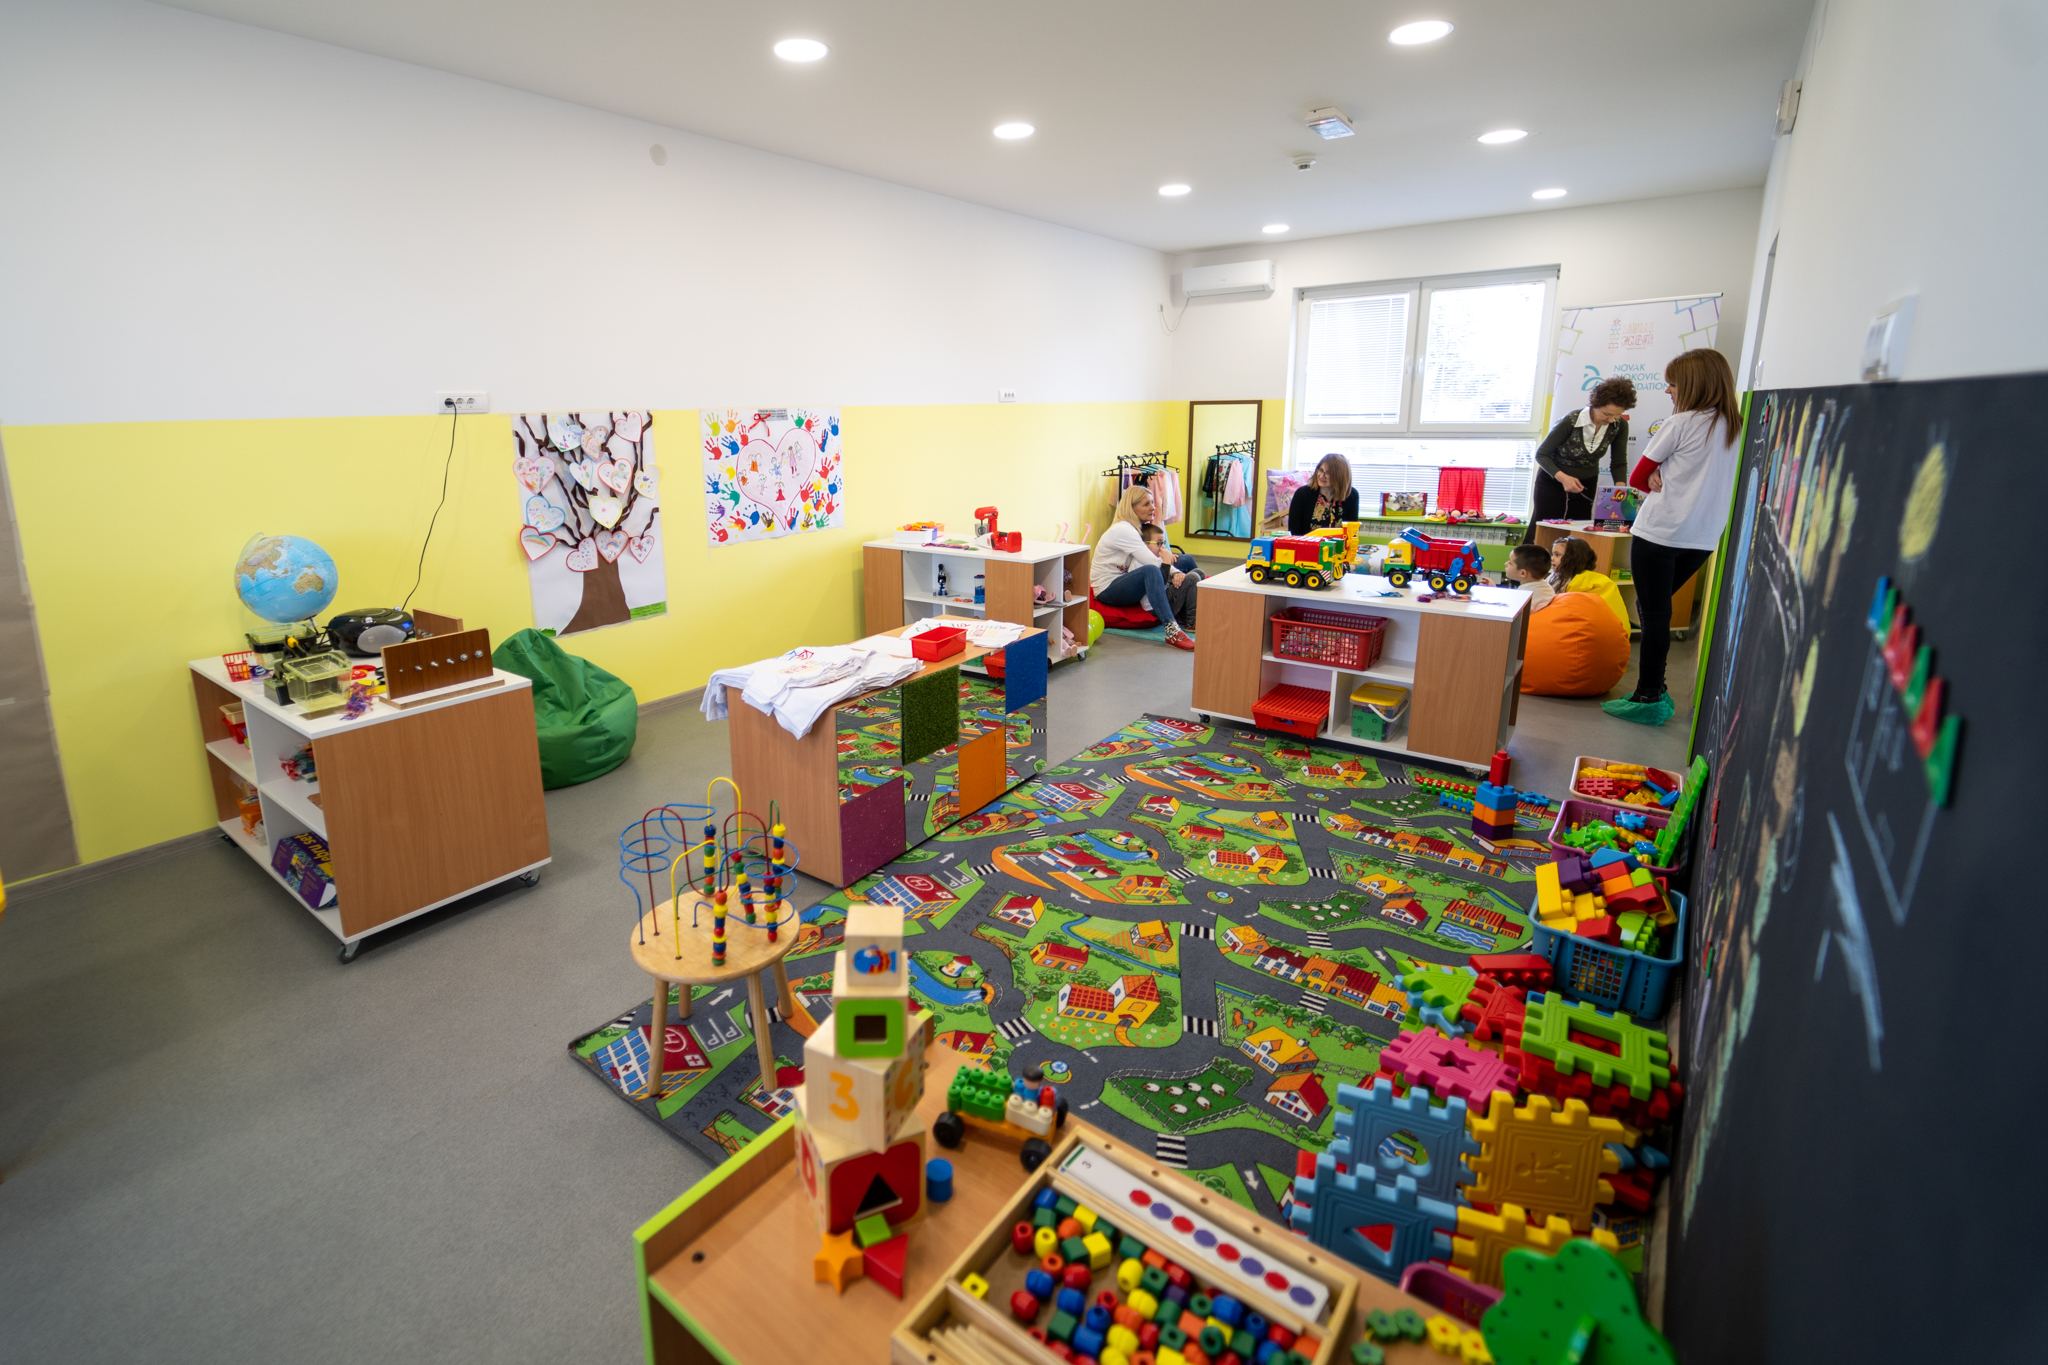 We have invested more than EUR 86.000 in the reconstruction and refurbishment of the pre-school building.  The School of Life has been opened in partnership with the municipality of Indjija.